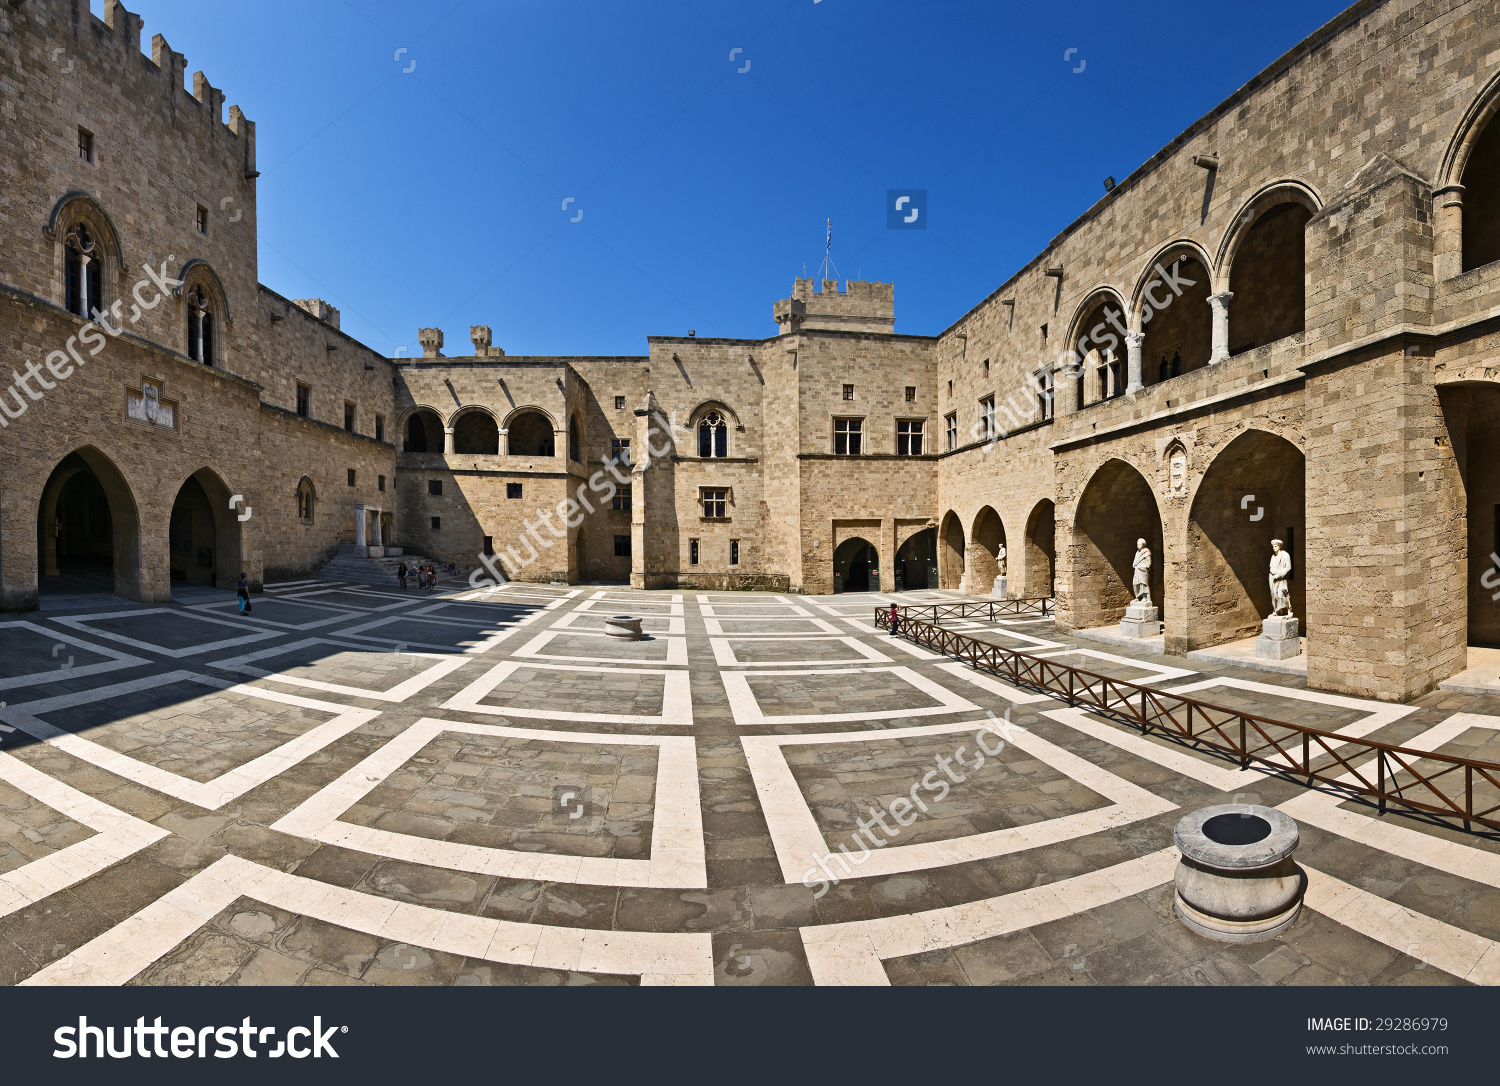 Palace Grand Master Knights Rhodes Greece Stock Photo 29286979.